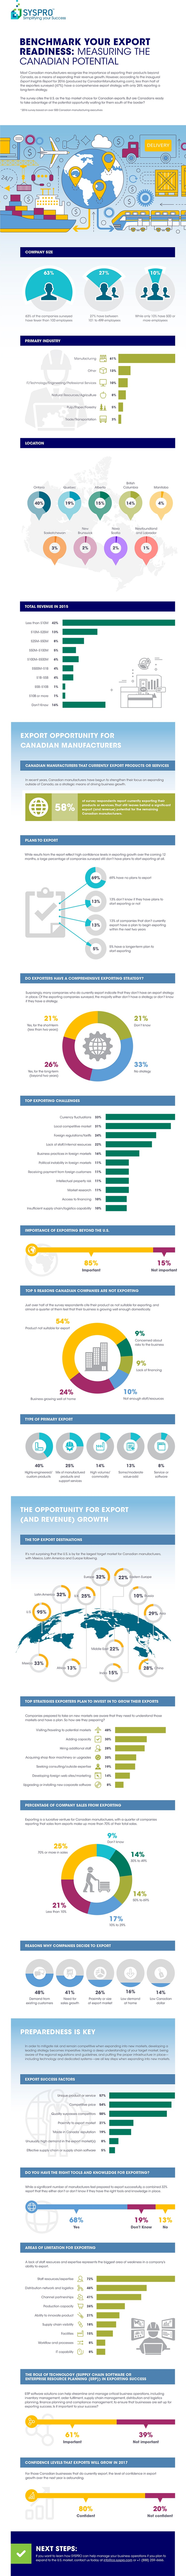 SYSPRO Canada Benchmark Your Export Readiness Infographic